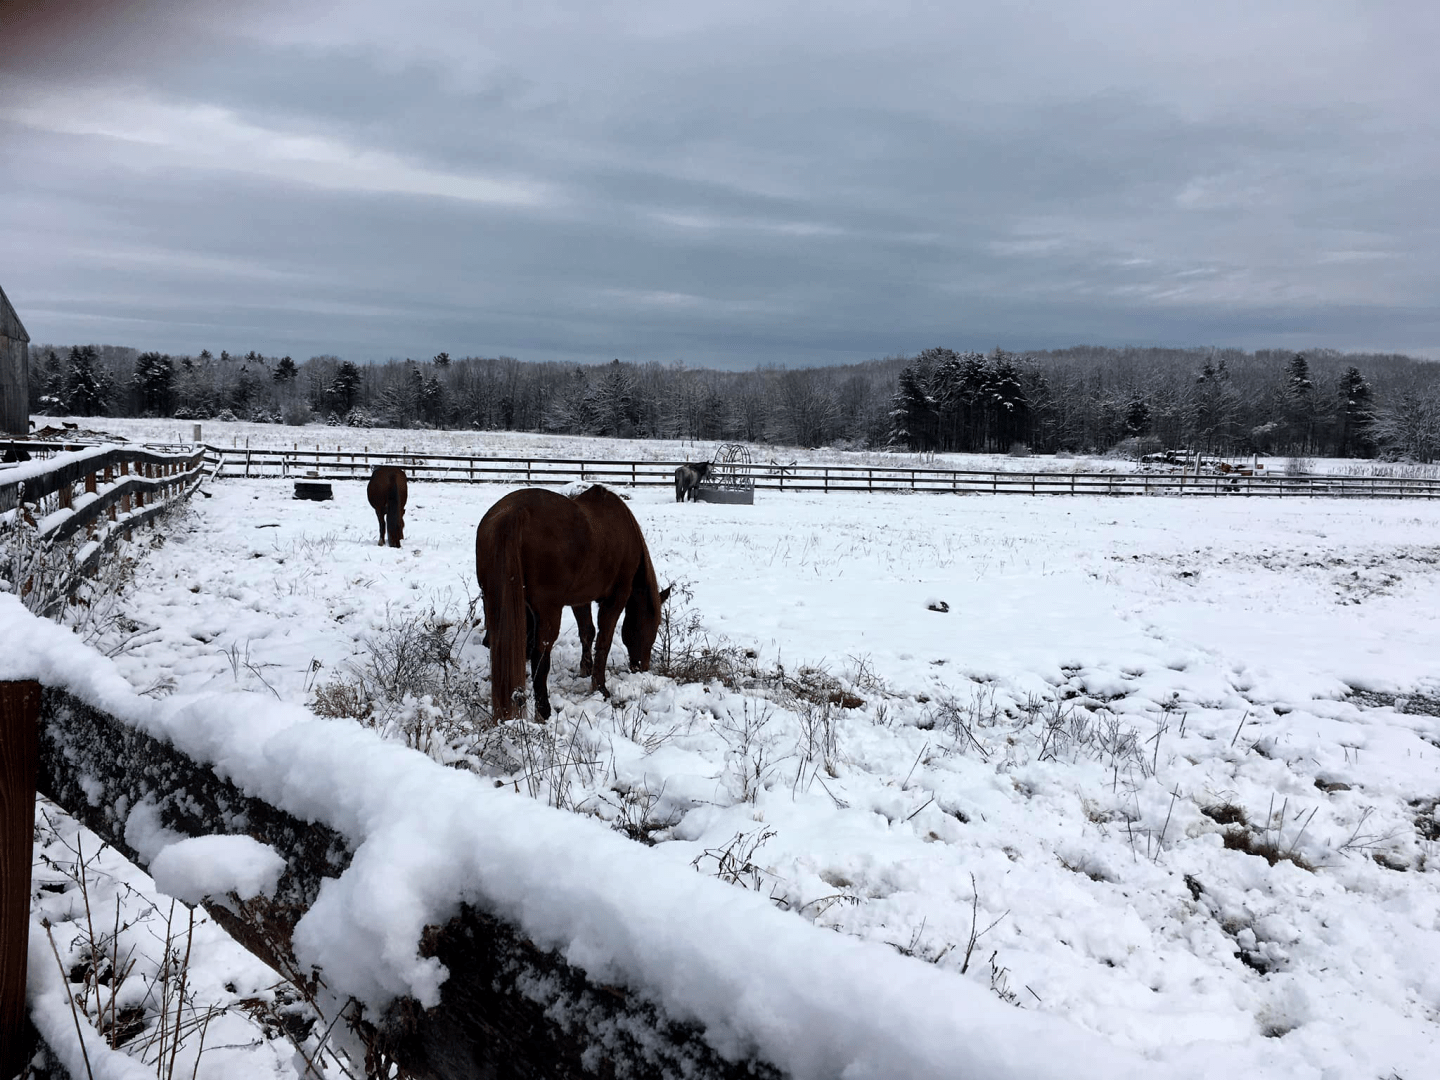 Beautiful view of horses in snowy landscape